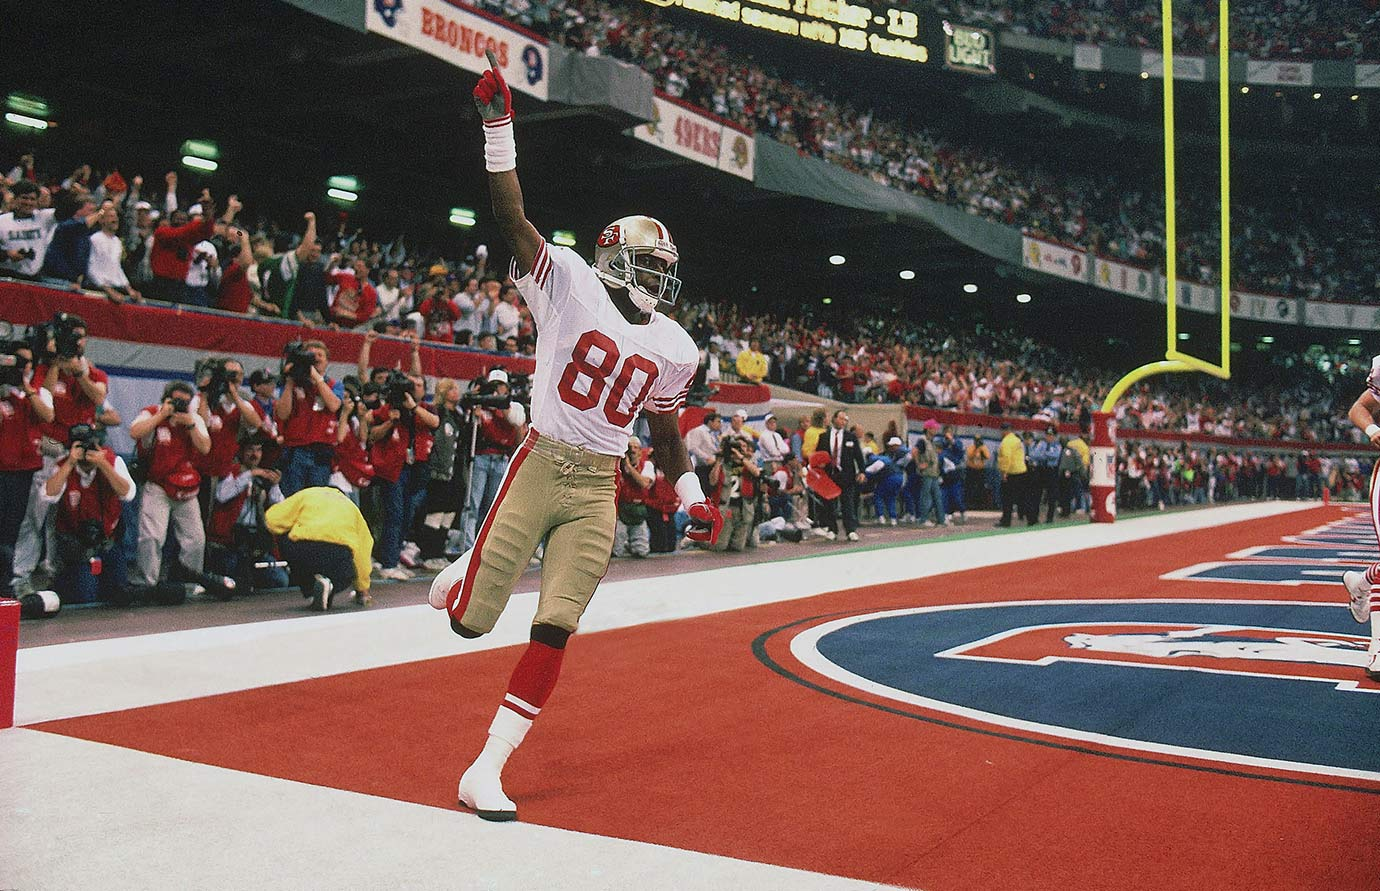 Jan. 28, 1990 — Super Bowl XXIV (San Francisco 49ers vs. Denver Broncos)